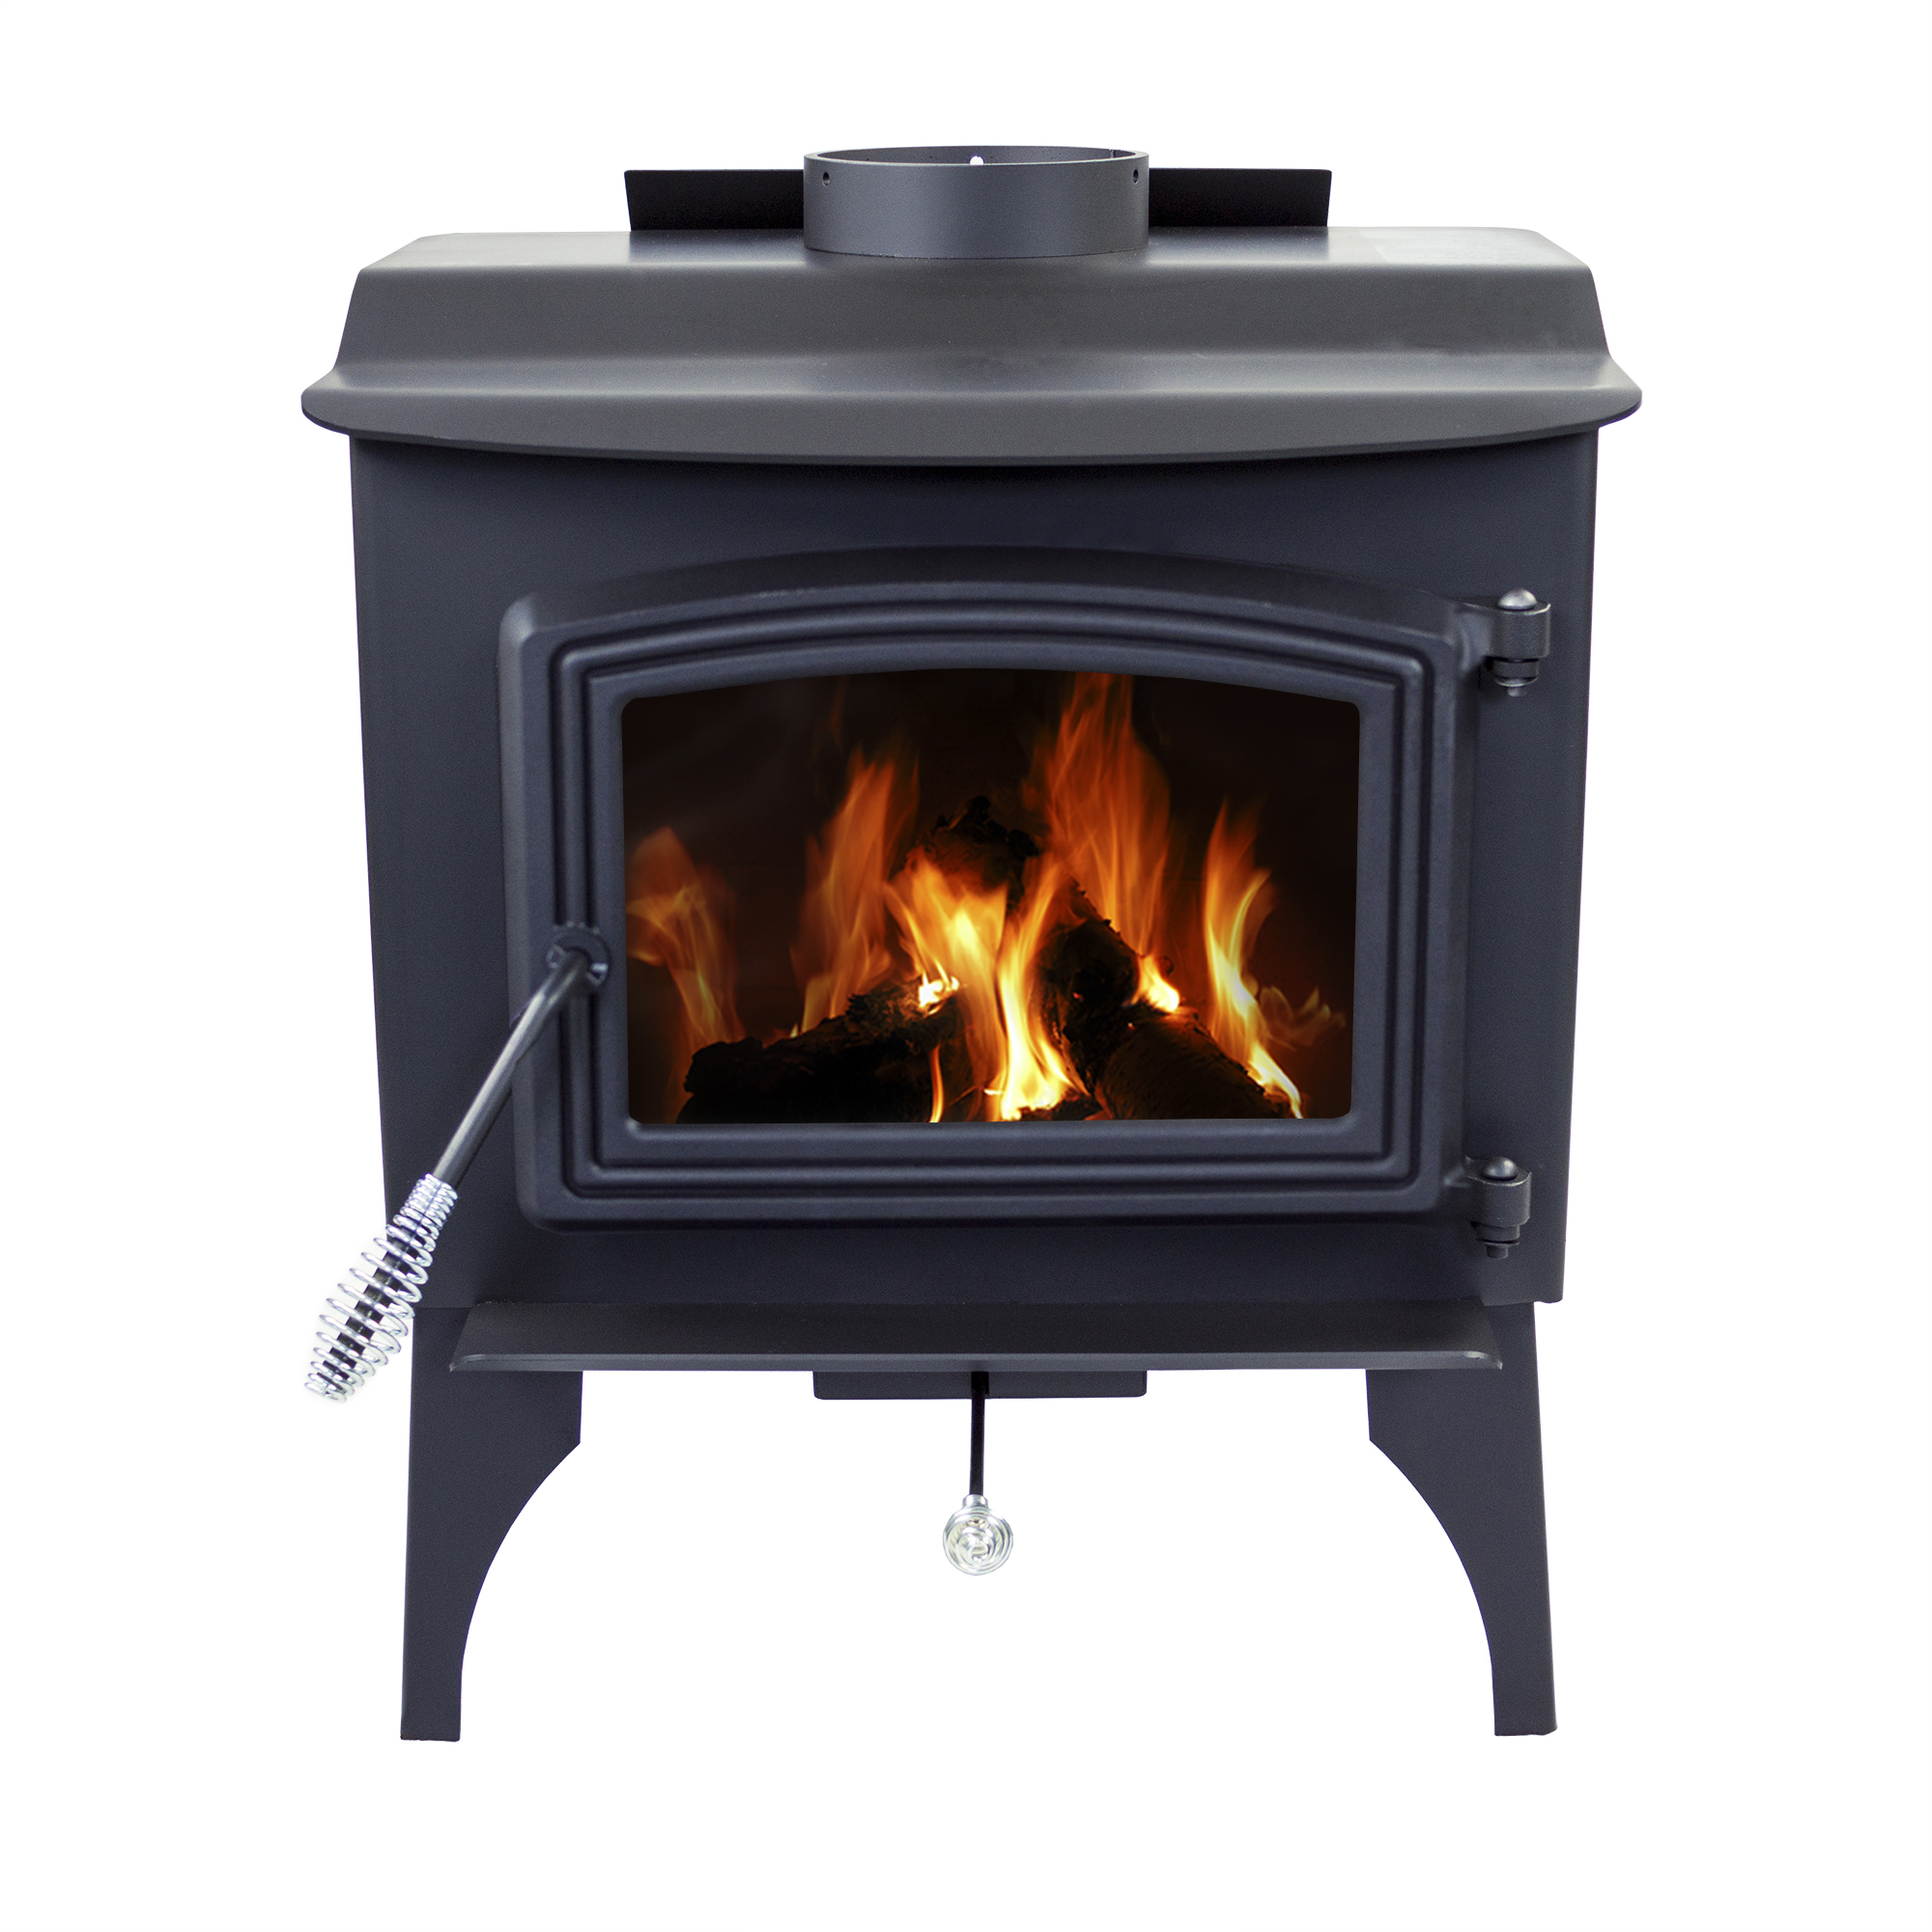 Pleasant Hearth 1,200 Sq. Ft. Small Wood Burning Stove by GHP Group, Inc.